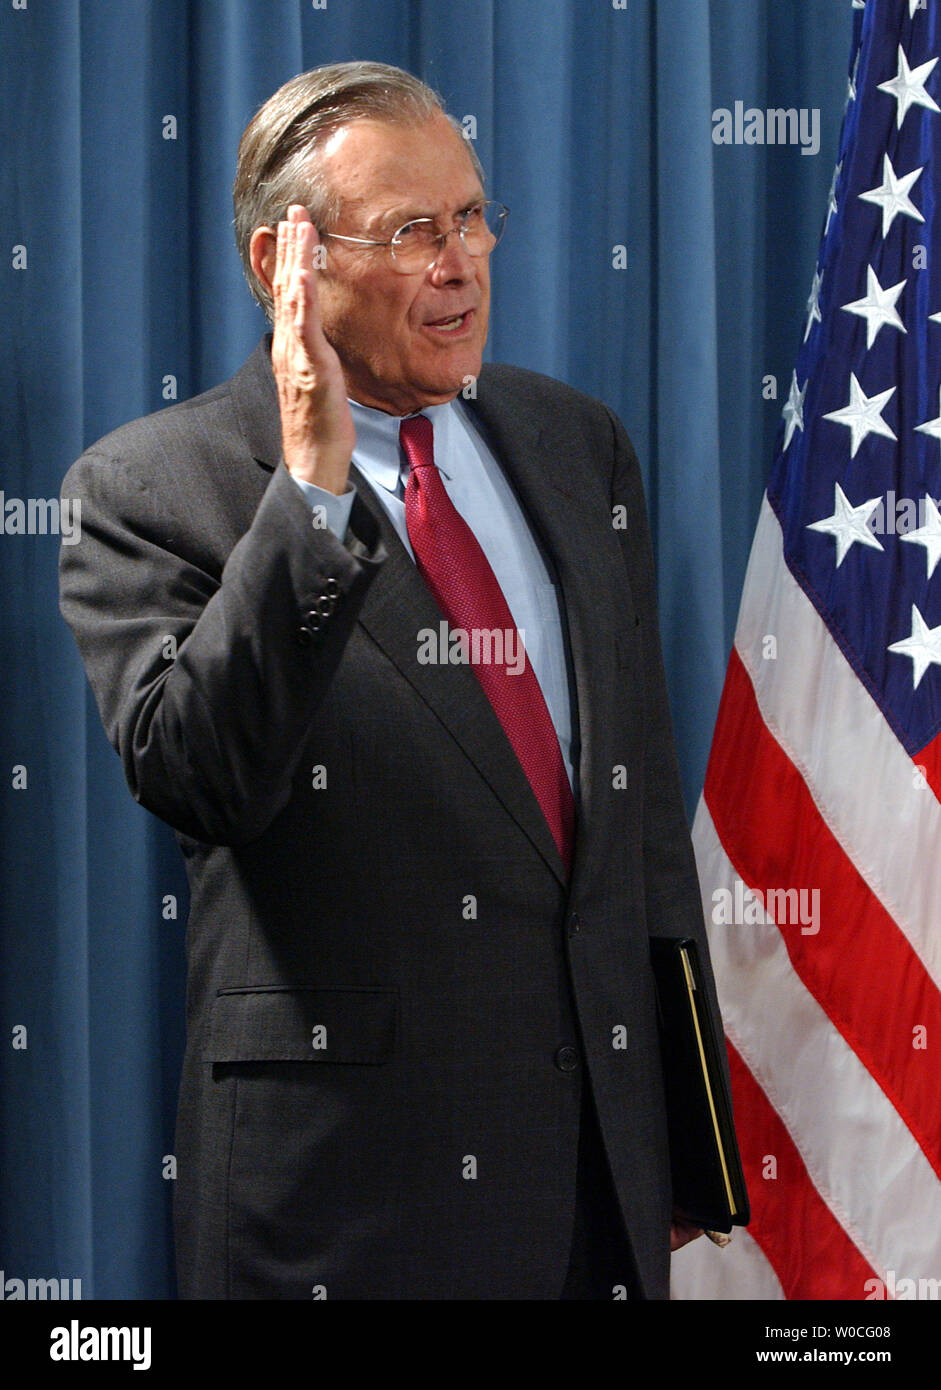 Defense Secretary Donald Rumsfeld speaks to the media about a US lead operation to take control of the Iraqi city of Fallujah from insurgents during a news conference at the Pentagon in Arlington, Va., on Nov. 8, 2004.    (UPI Photo/Roger L. Wollenberg) Stock Photo